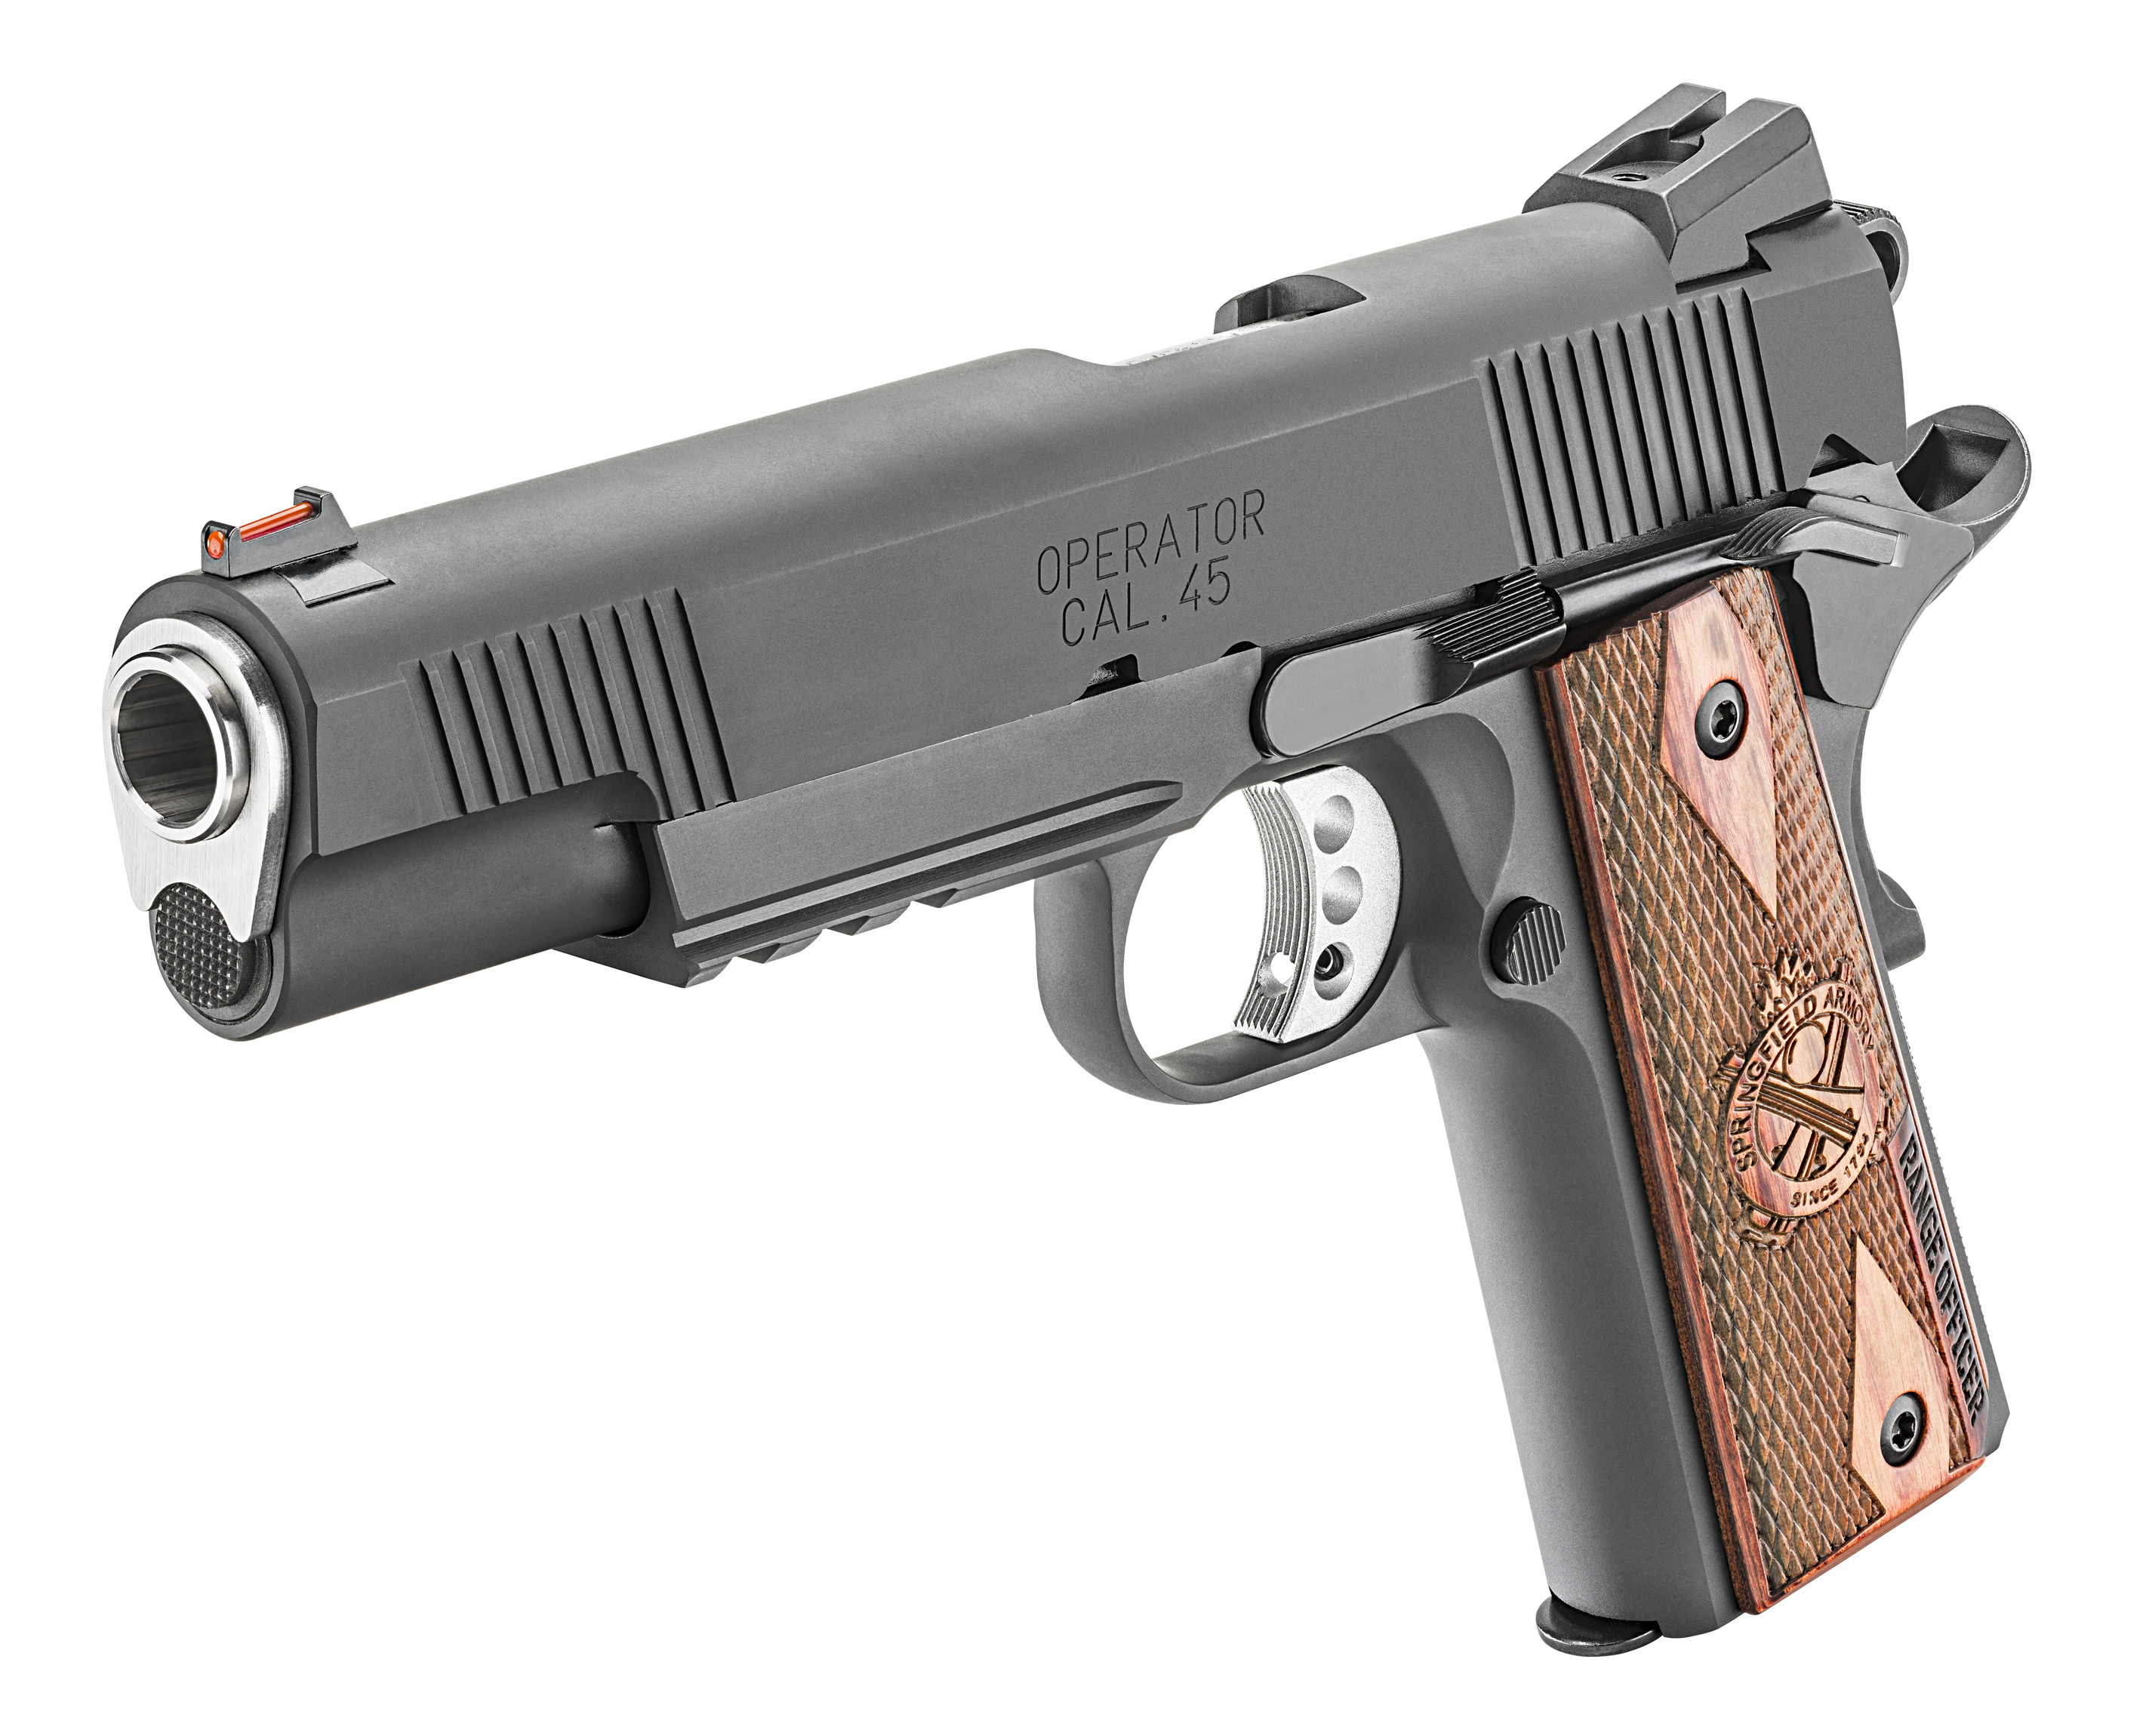 Press Release: Springfield Armory 1911 Range Officer Operator